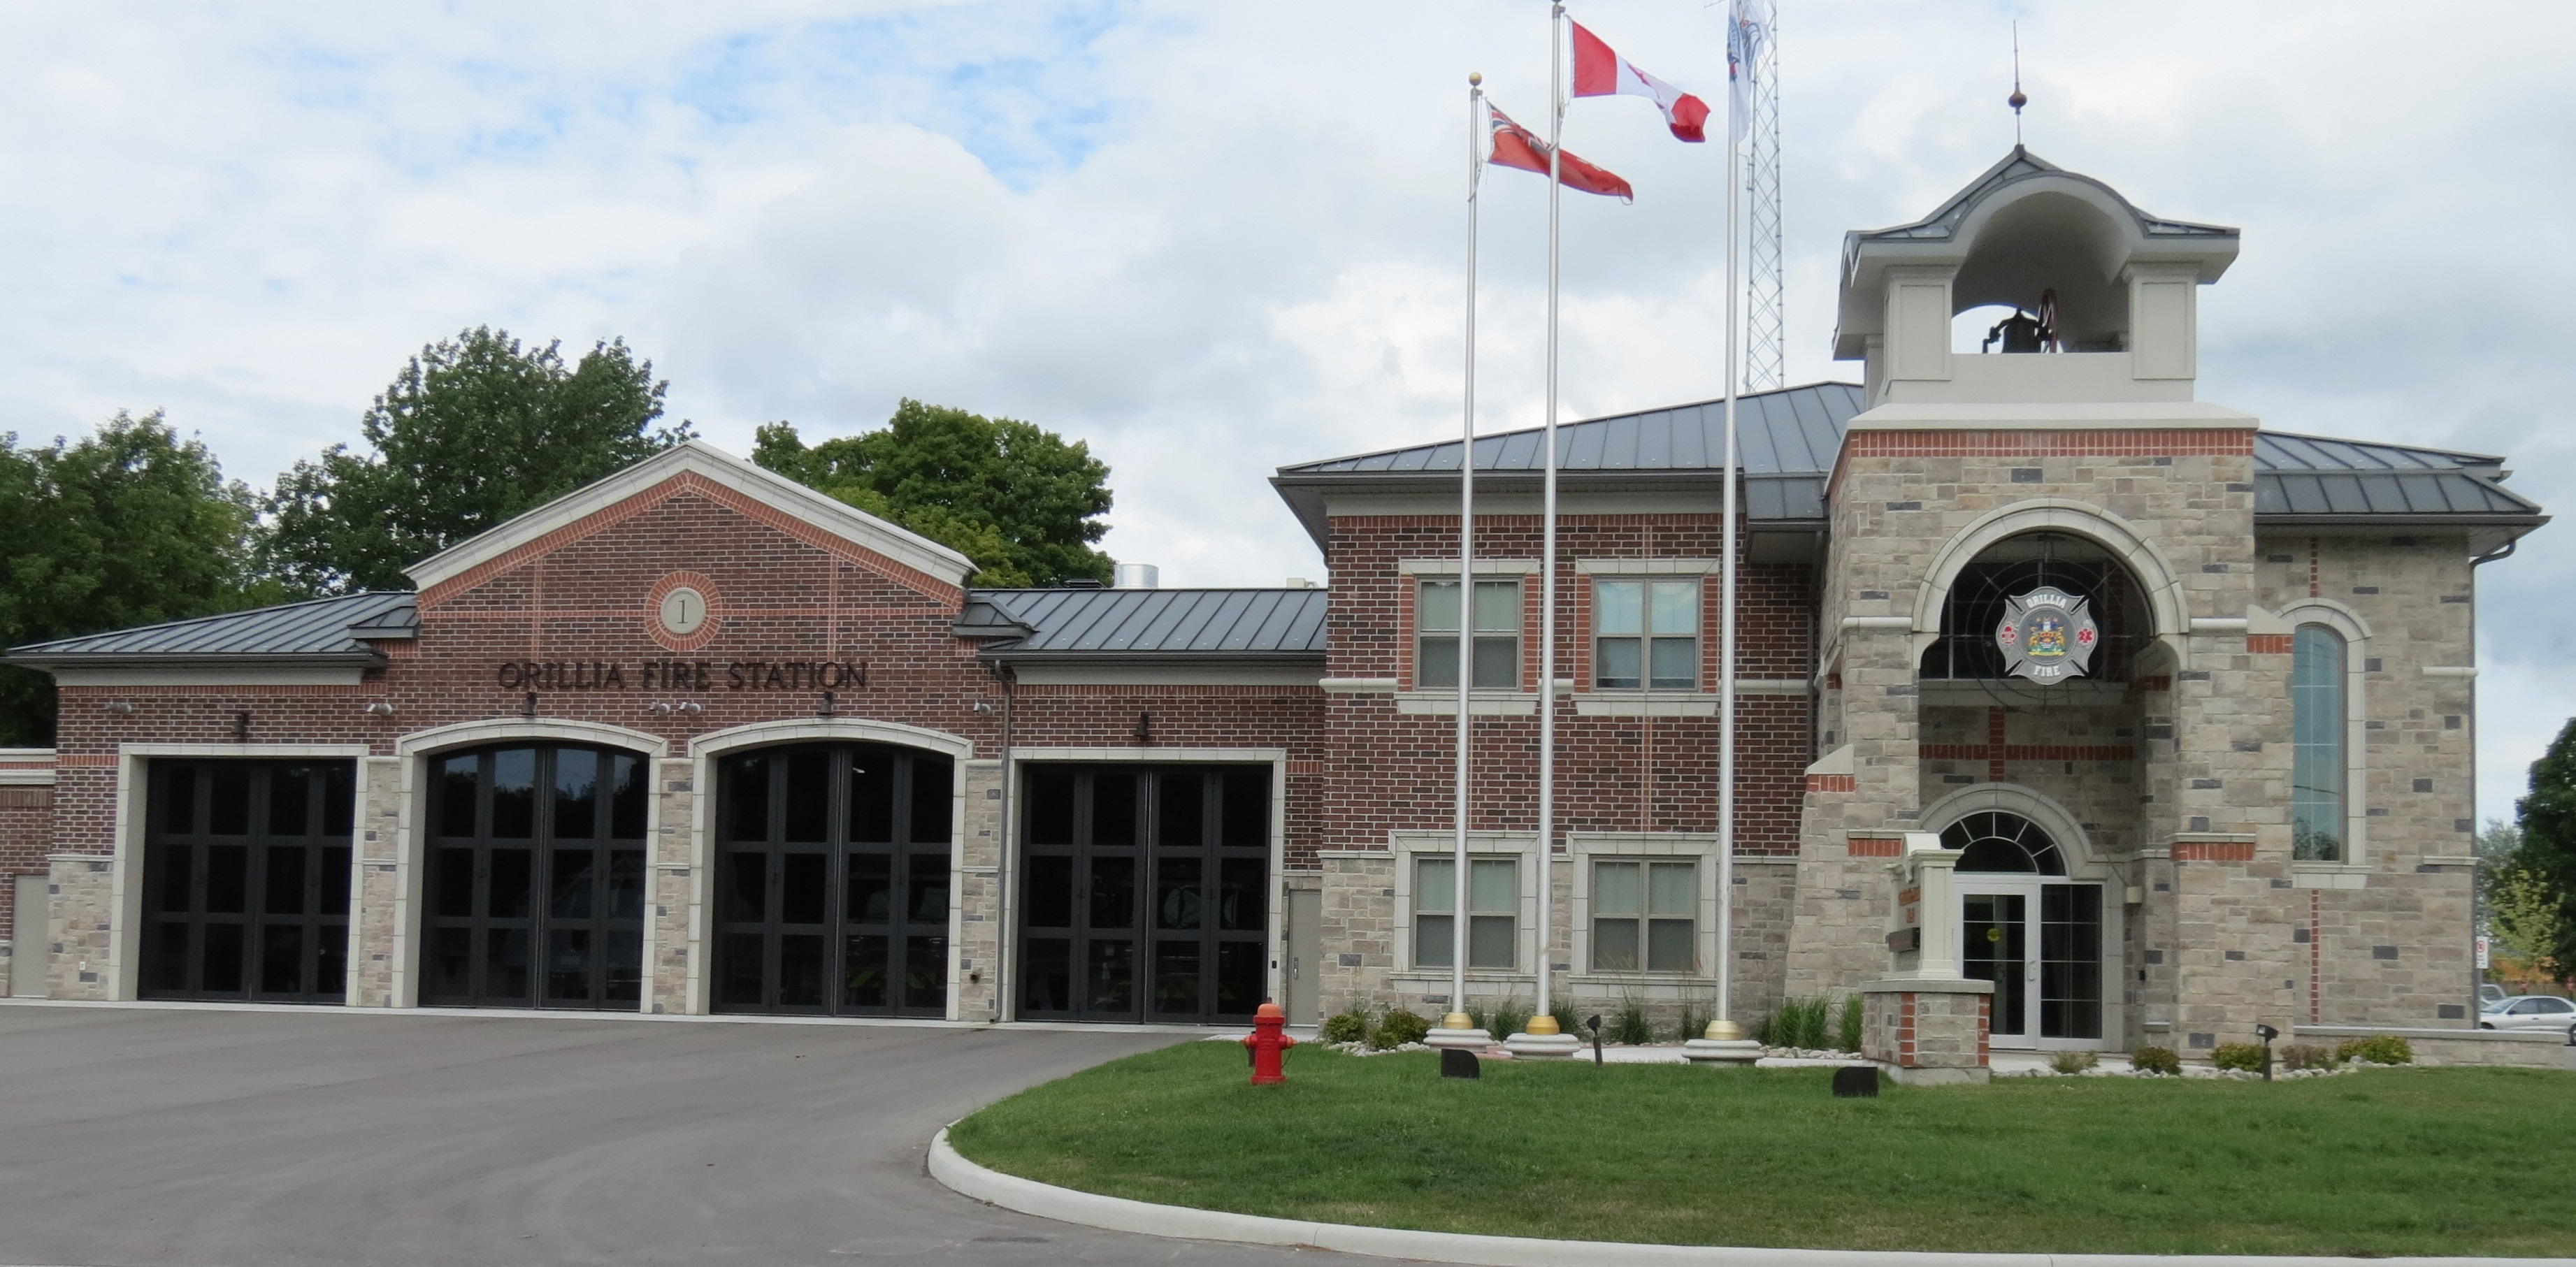 Orillia Fire Station No 1  Panici